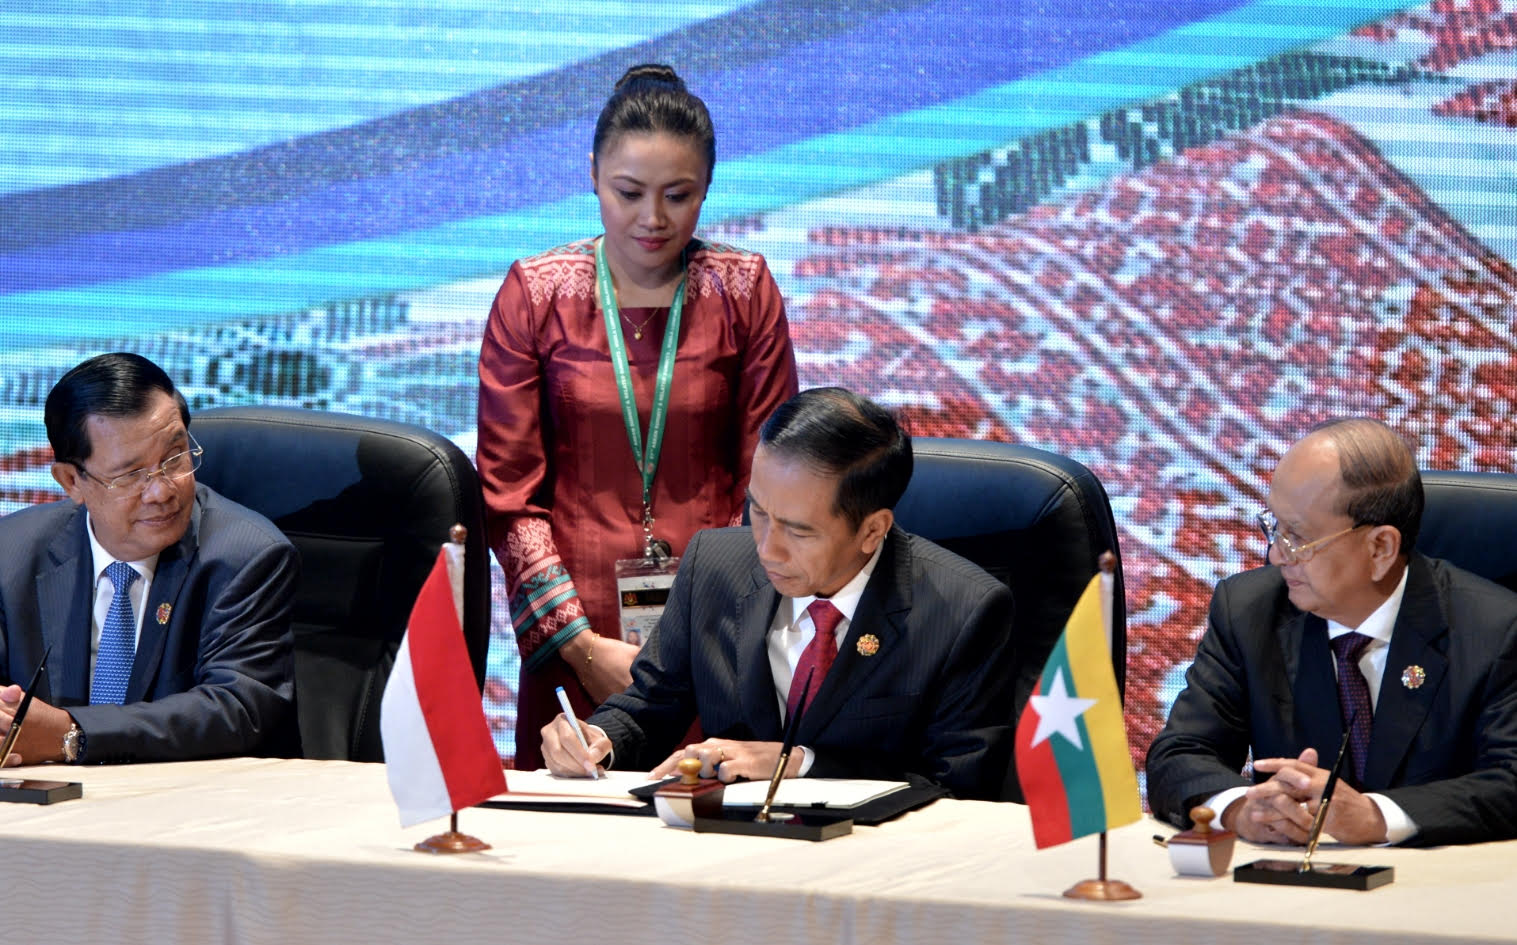 Presiden Jokowi bersama para pemimpin negara ASEAN lainnya menandatangani ASEAN Convention Against Trafficking in Persons, Especially Women and Children, di Kuala Lumpur, Malaysia, Sabtu (21/11)